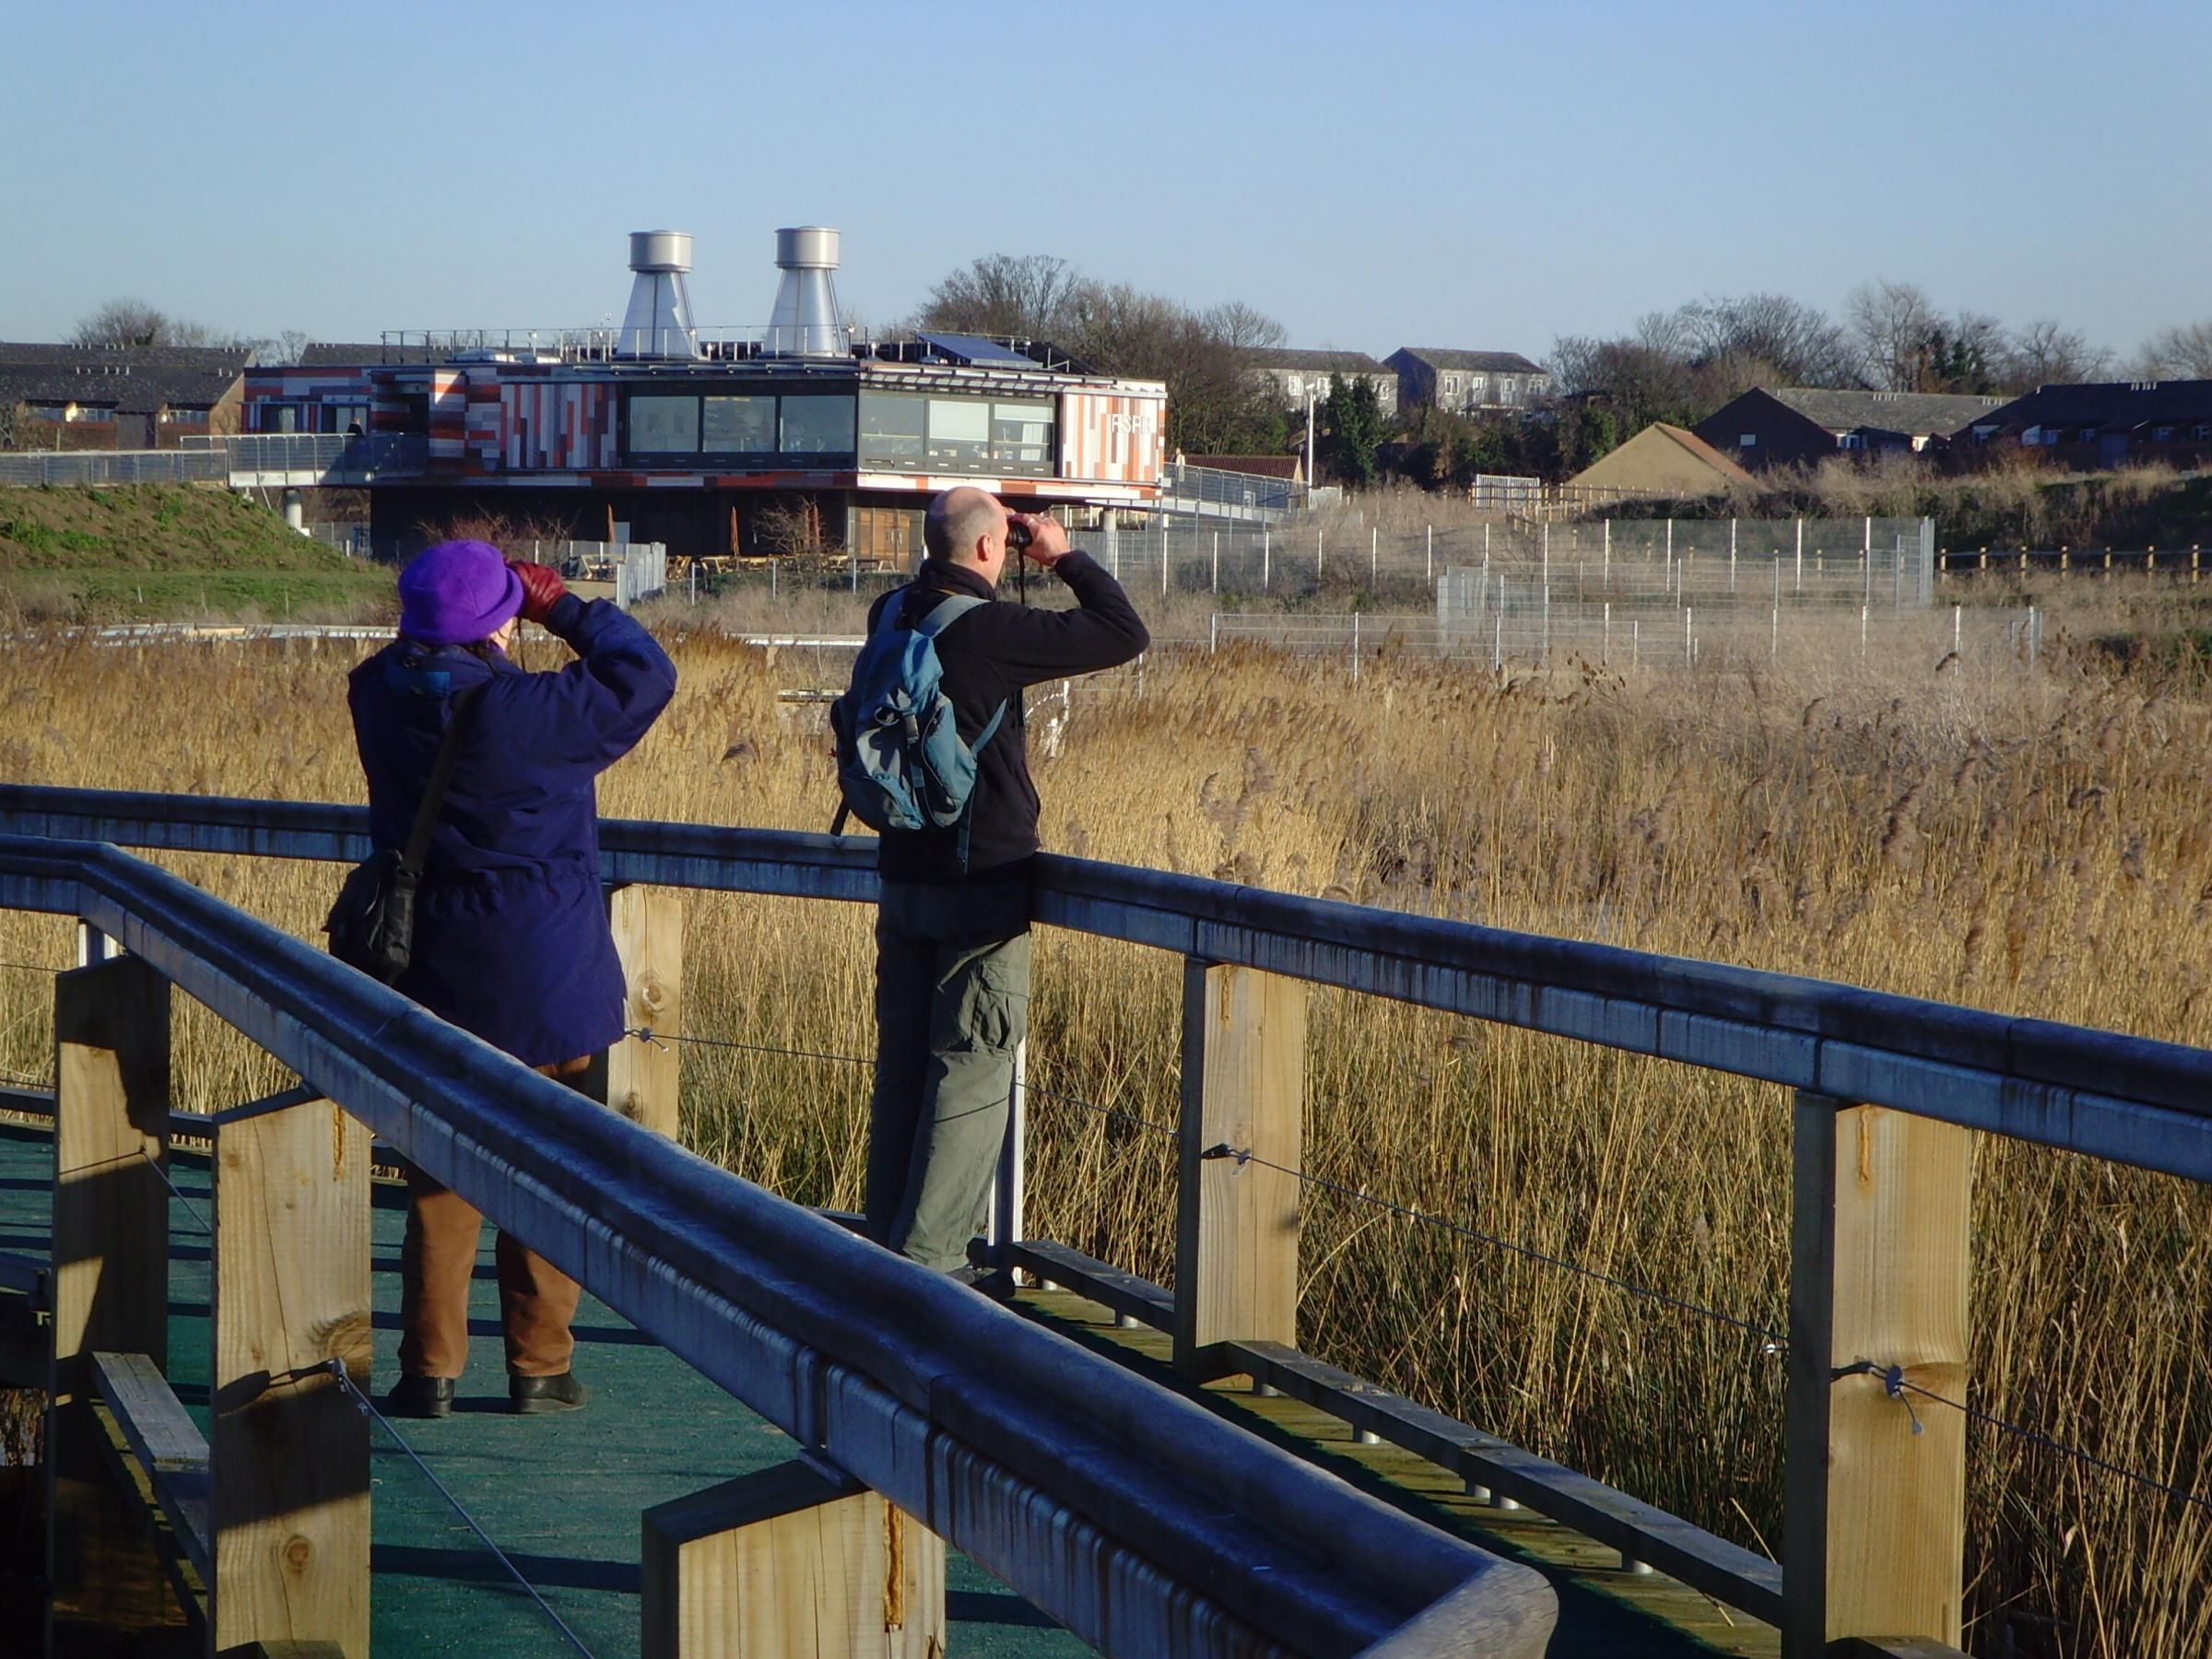 The Wildlife Walk Wednesdays